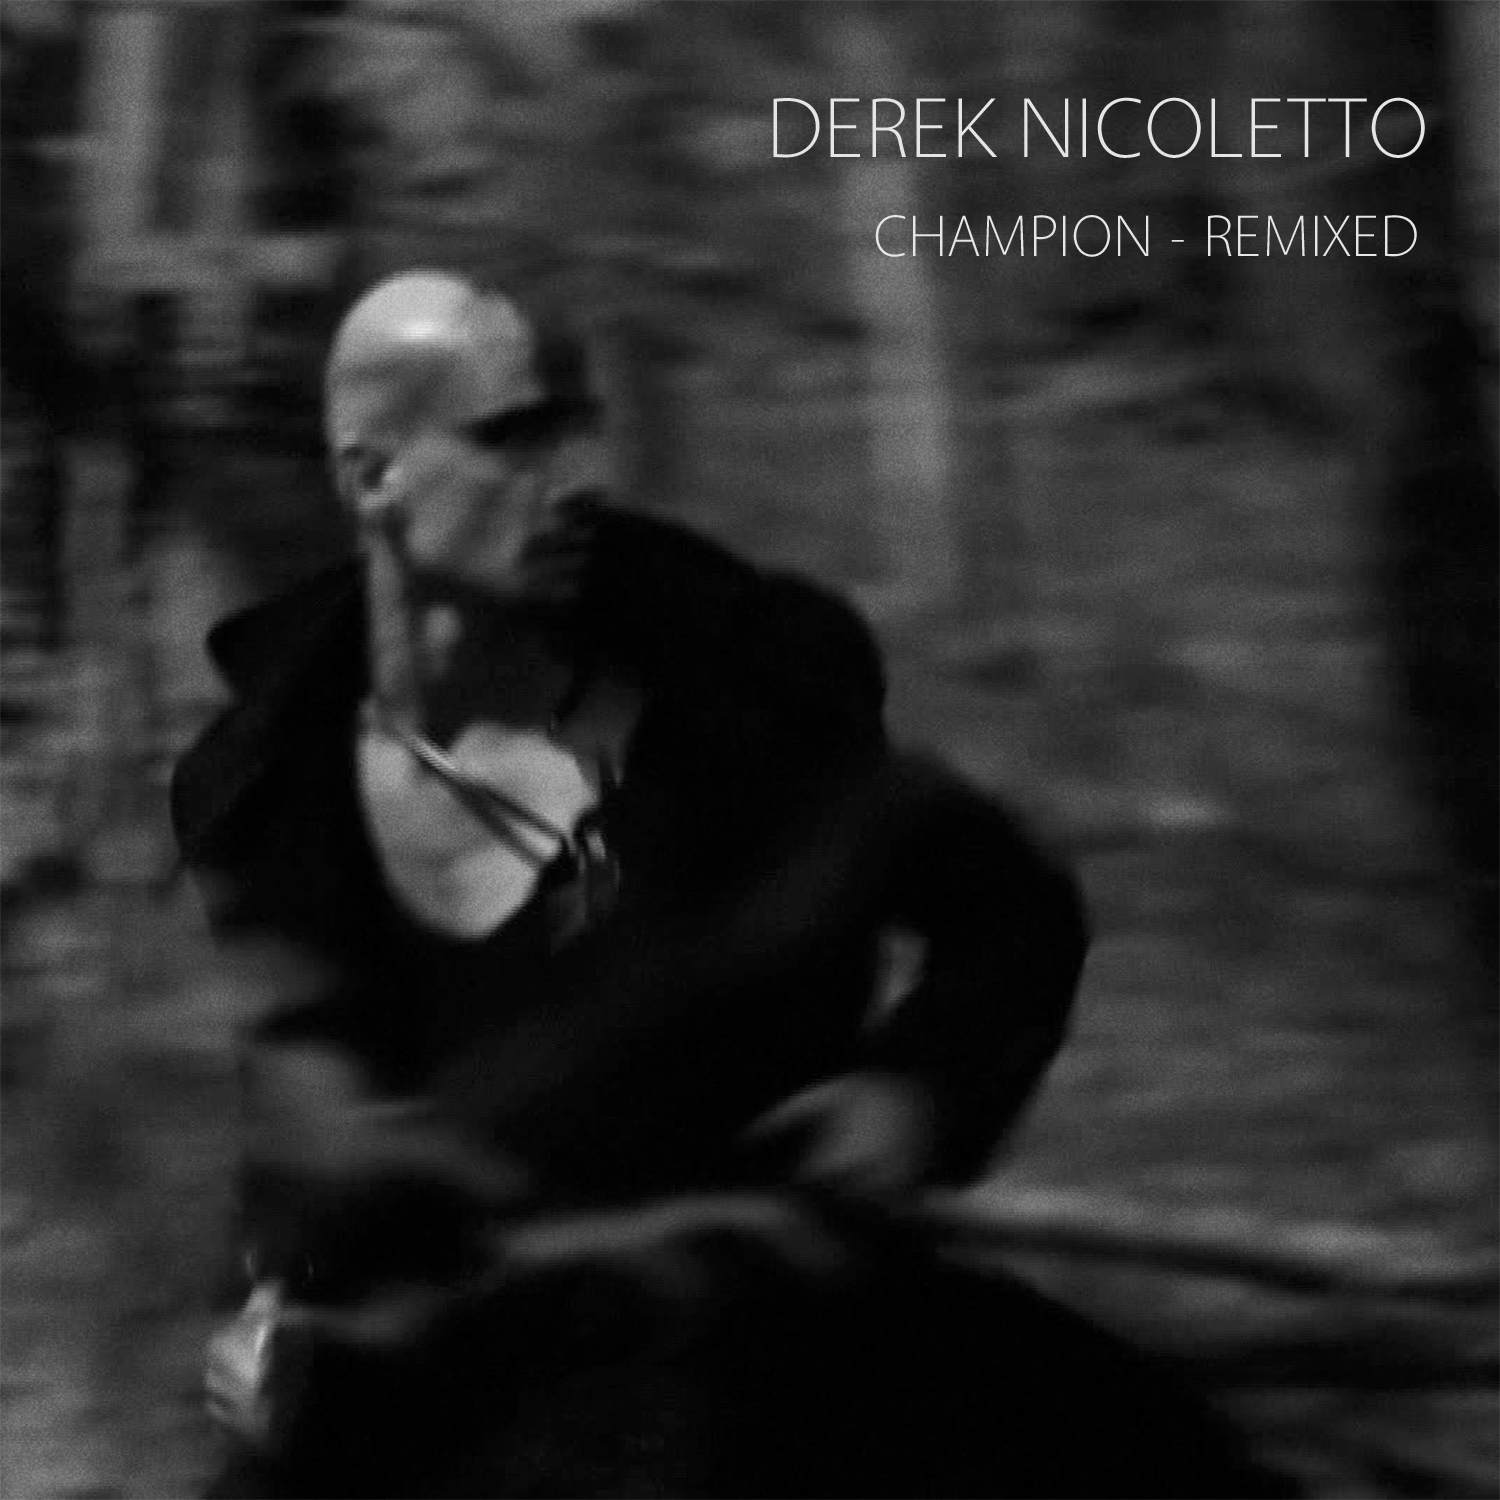 Champion Remix  - Derek Nicoletto (2012)